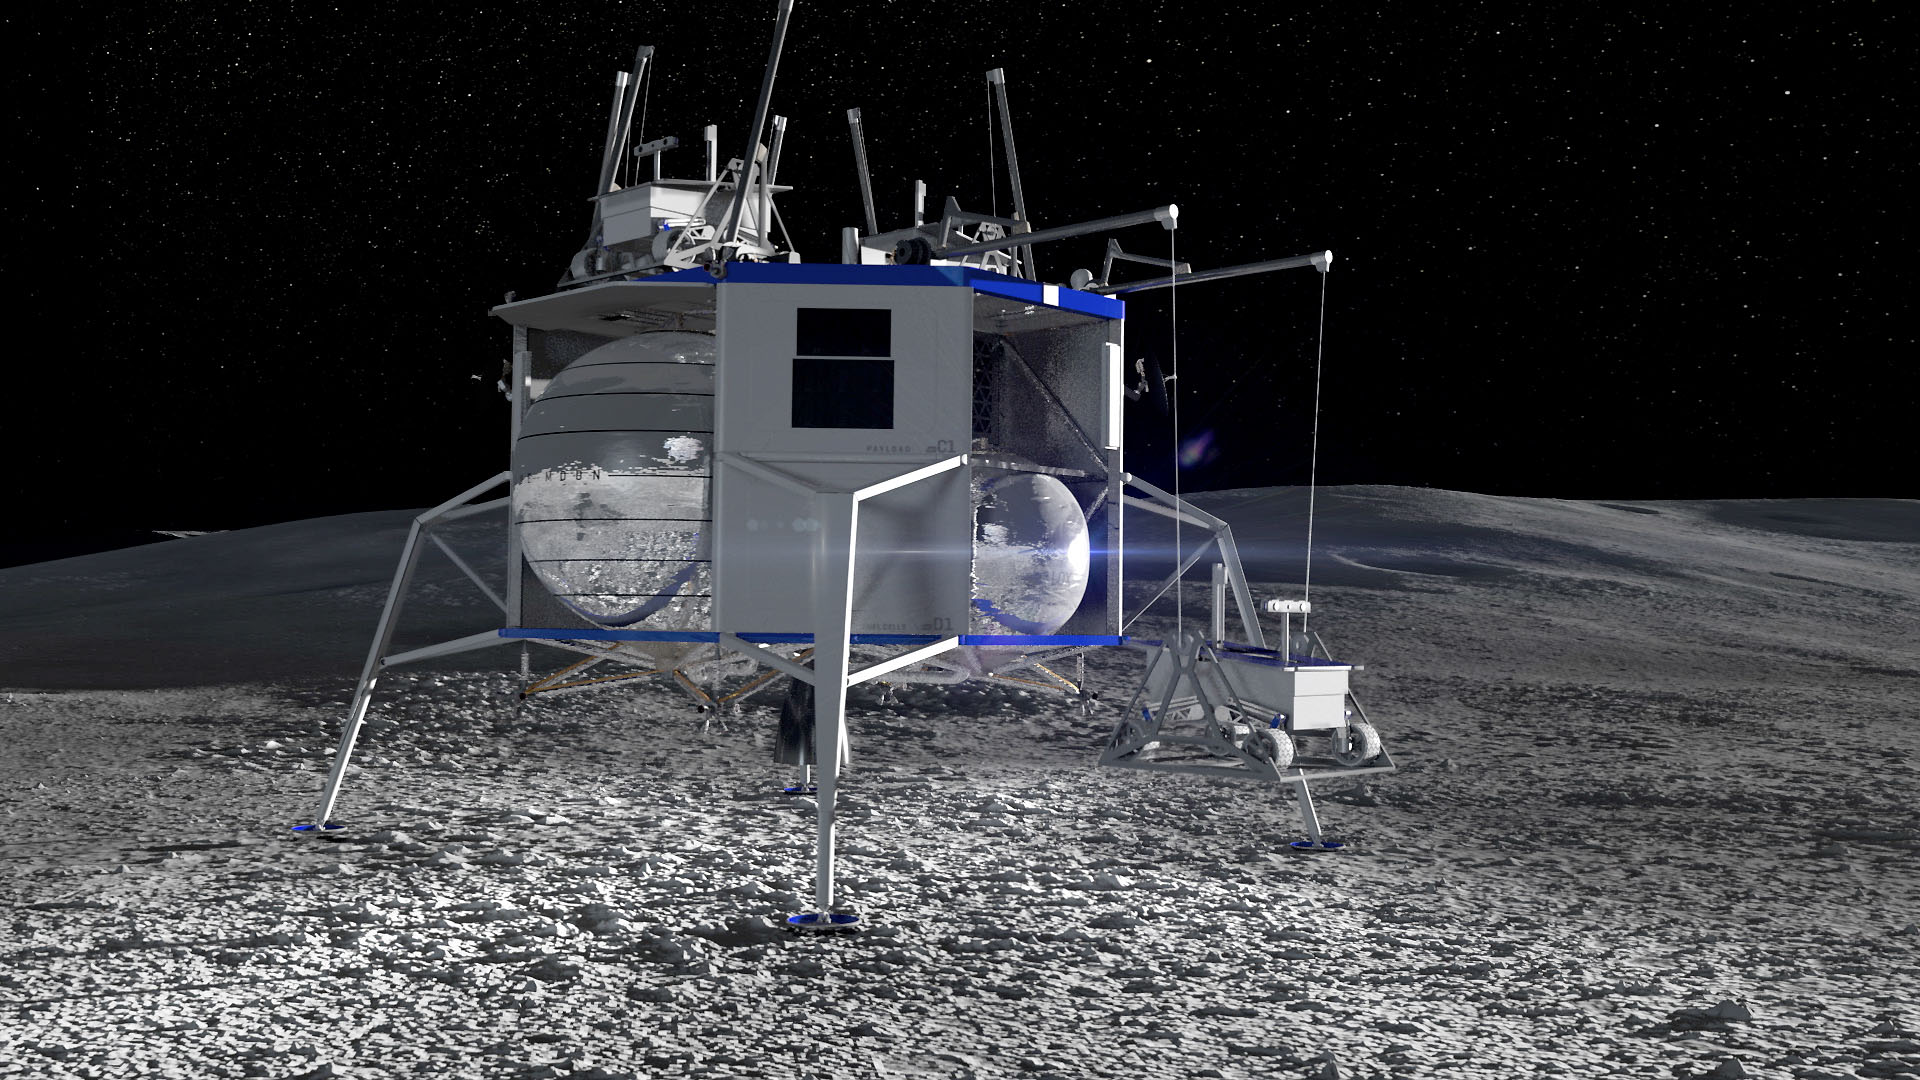 NASA agrees to purchase moon rocks for $1 in a deal that may involve Blue Origin